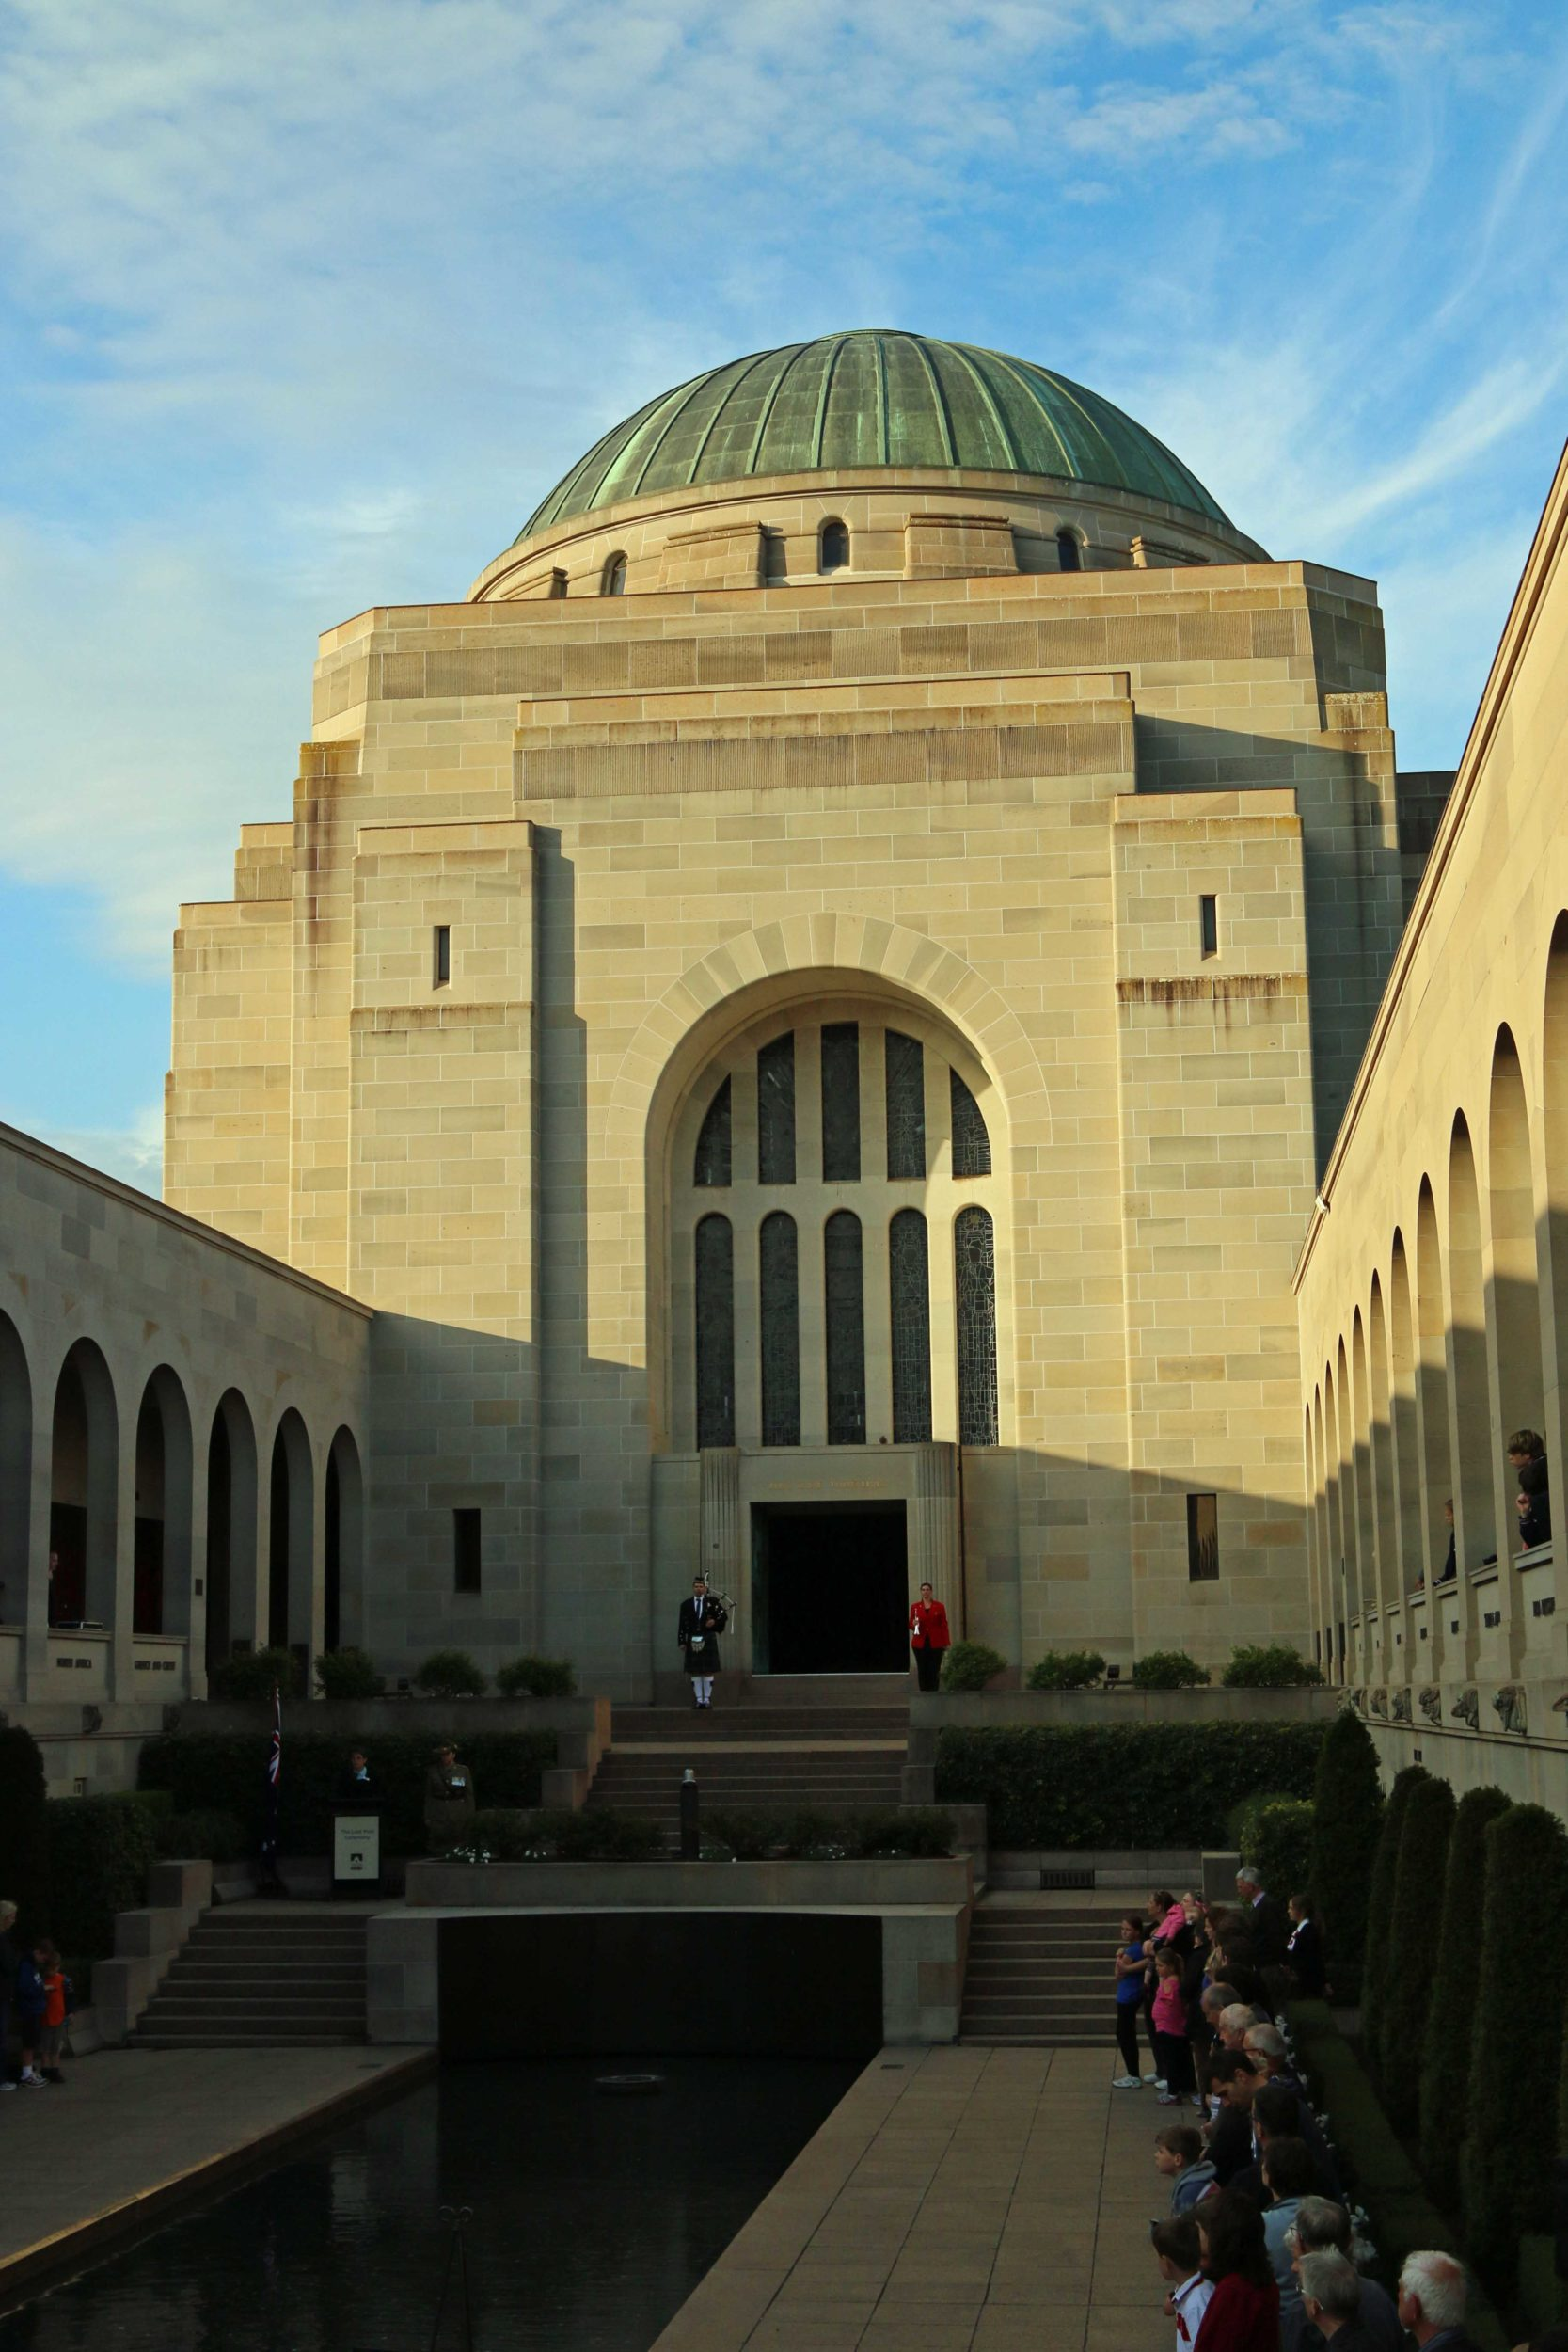 Gathering for the Last Post Ceremony at the Australian War Memorial in Canberra